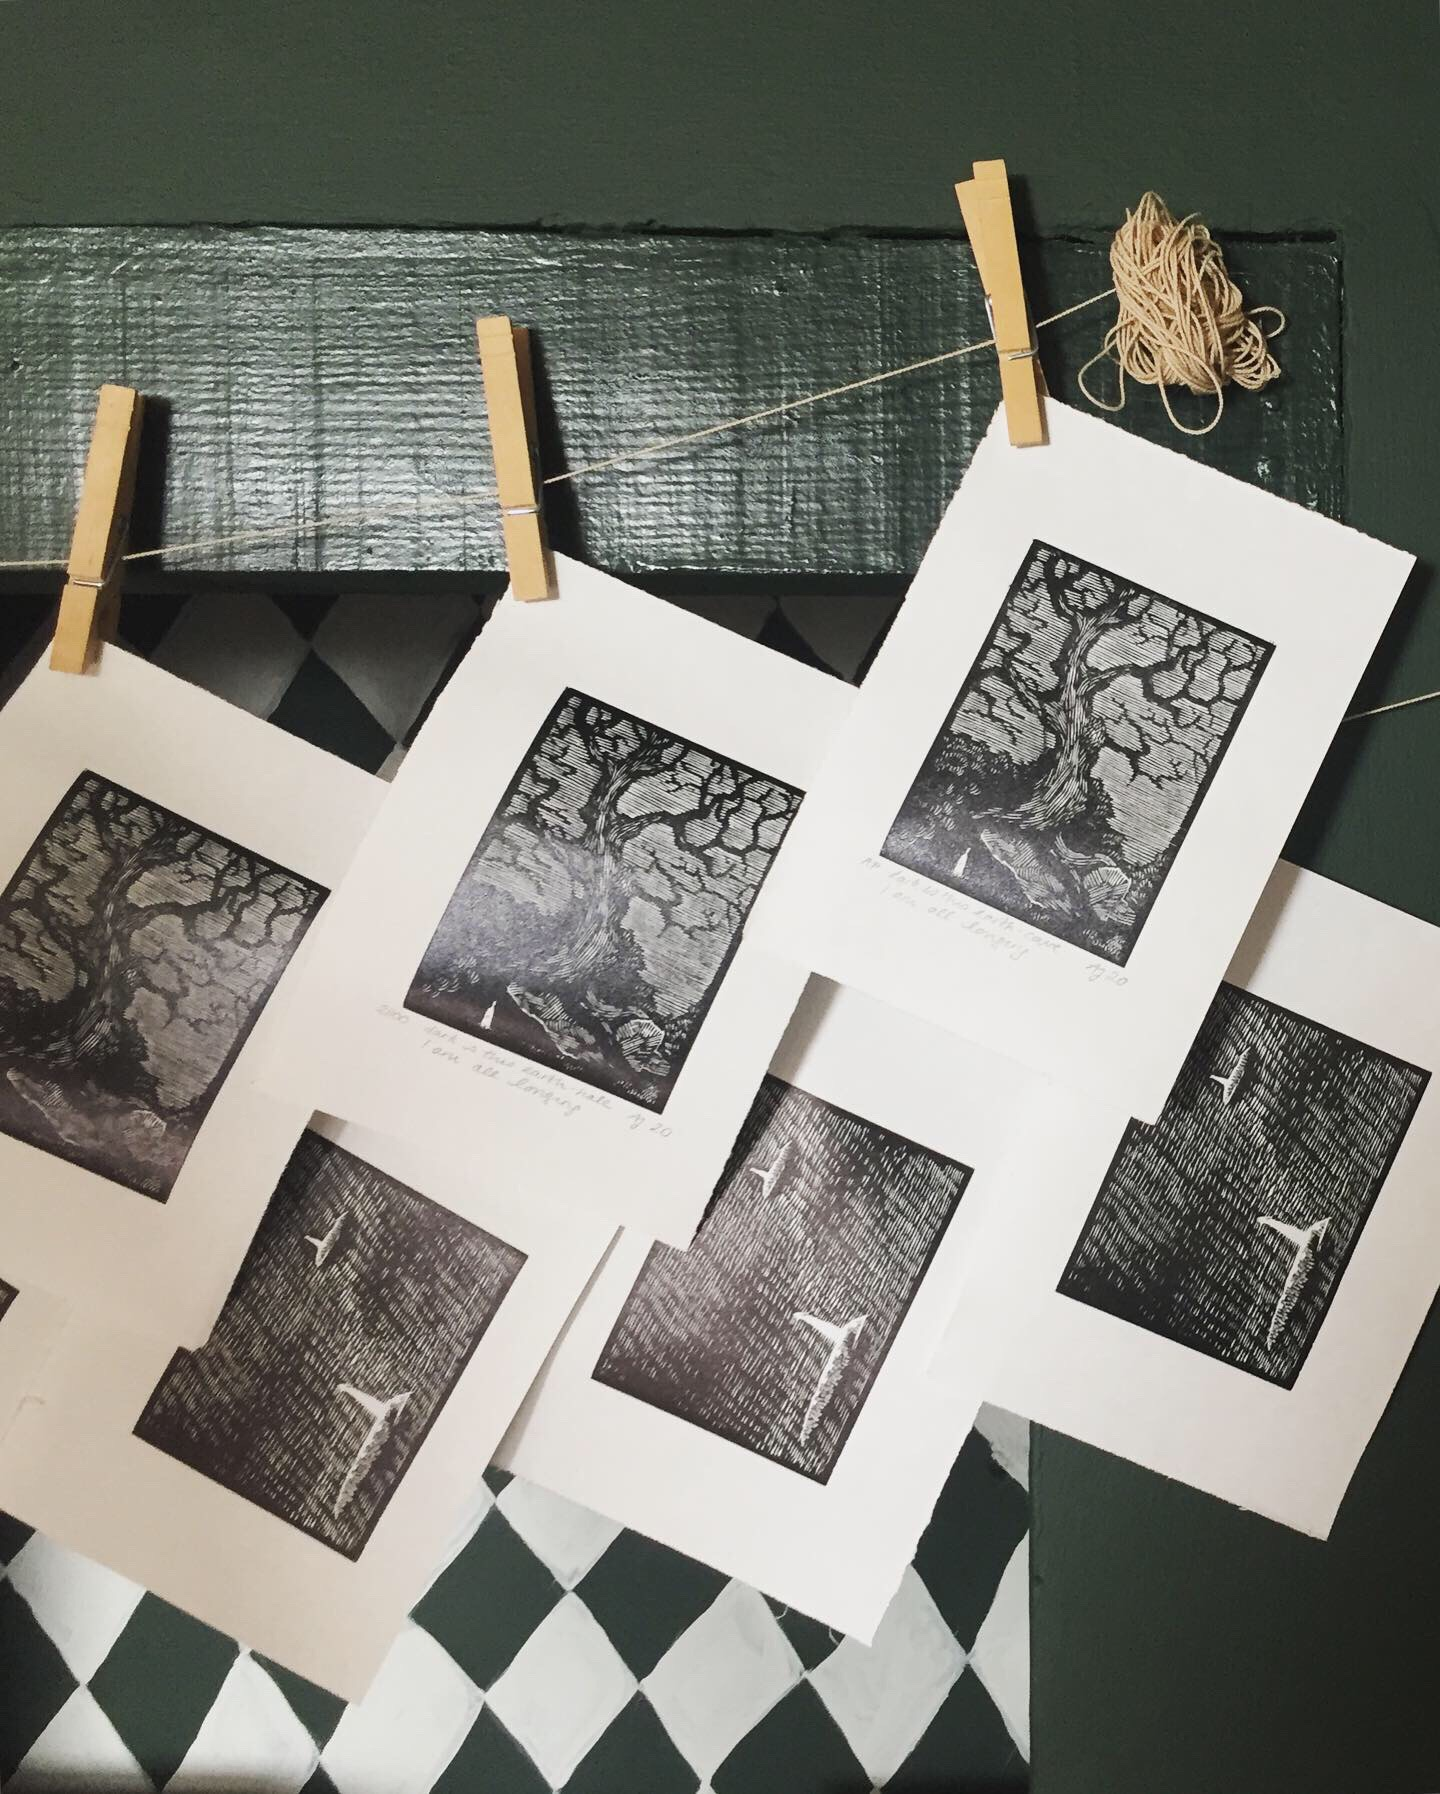 Wood engravings hanging on clothes line